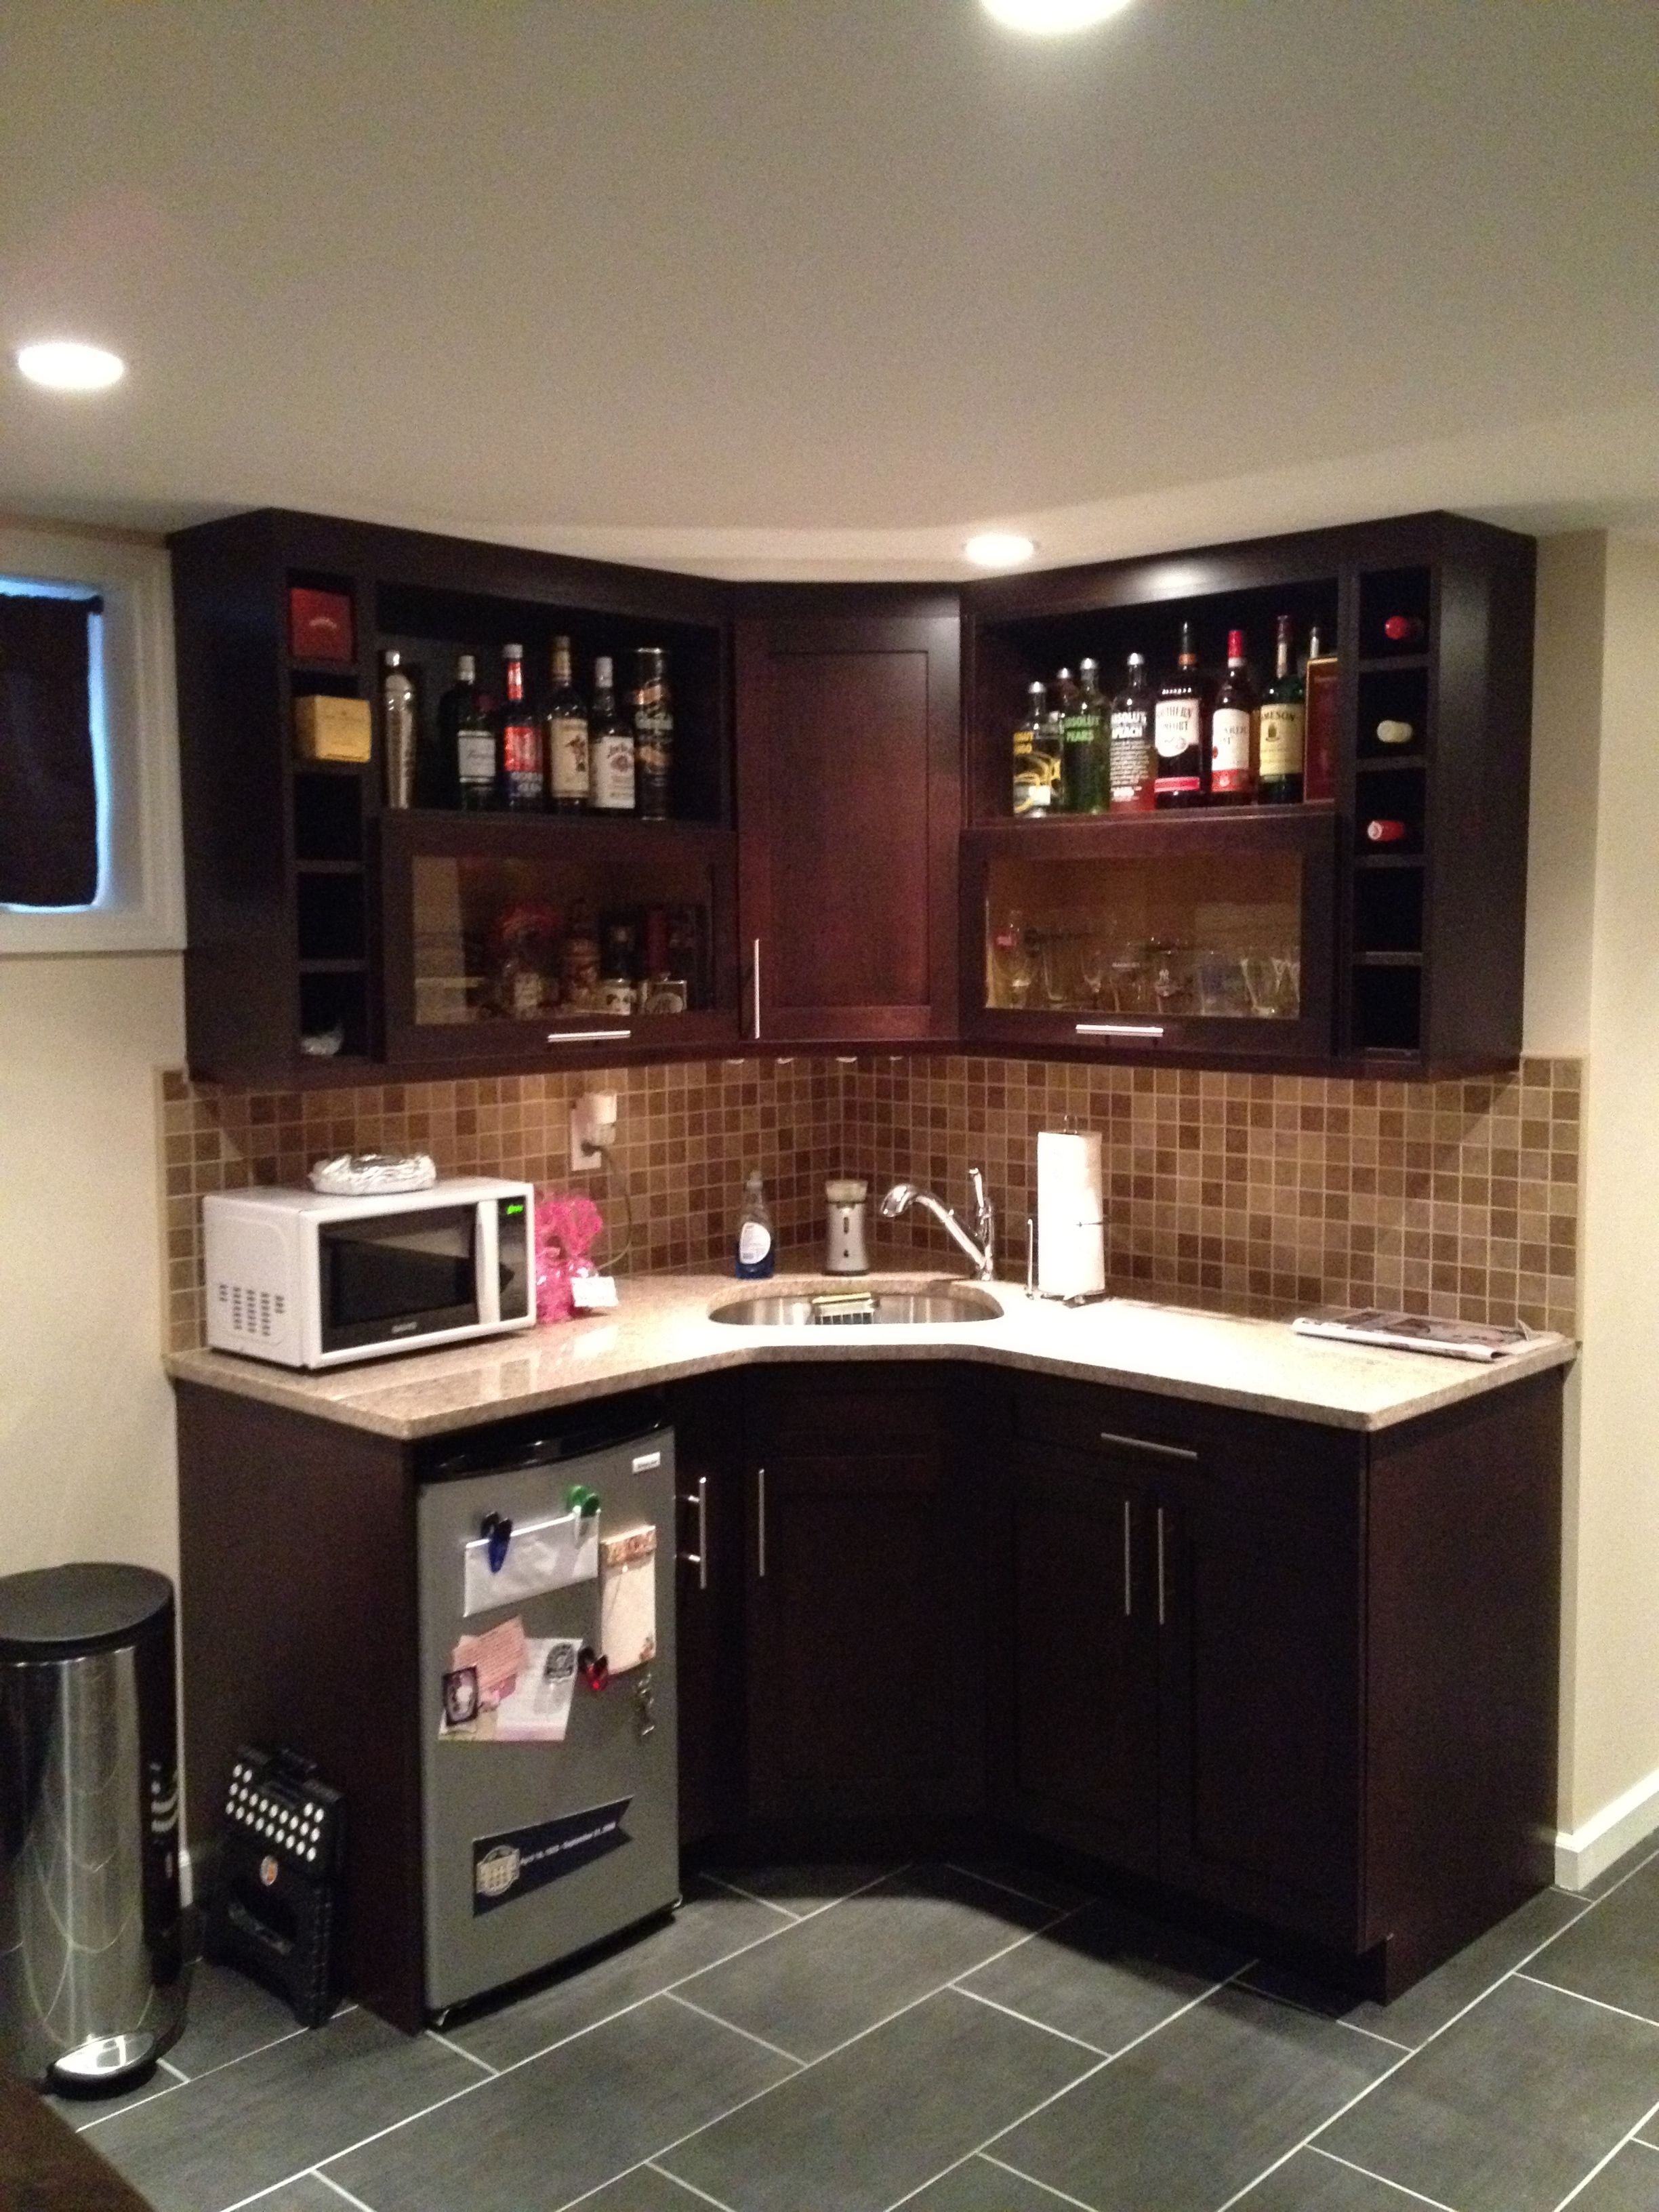 This Kitchenette Is Great For A Small Apartment Or For An Office Our Custom Office Furniture Is Taki Small Kitchenette Office Kitchenette Kitchen Design Small